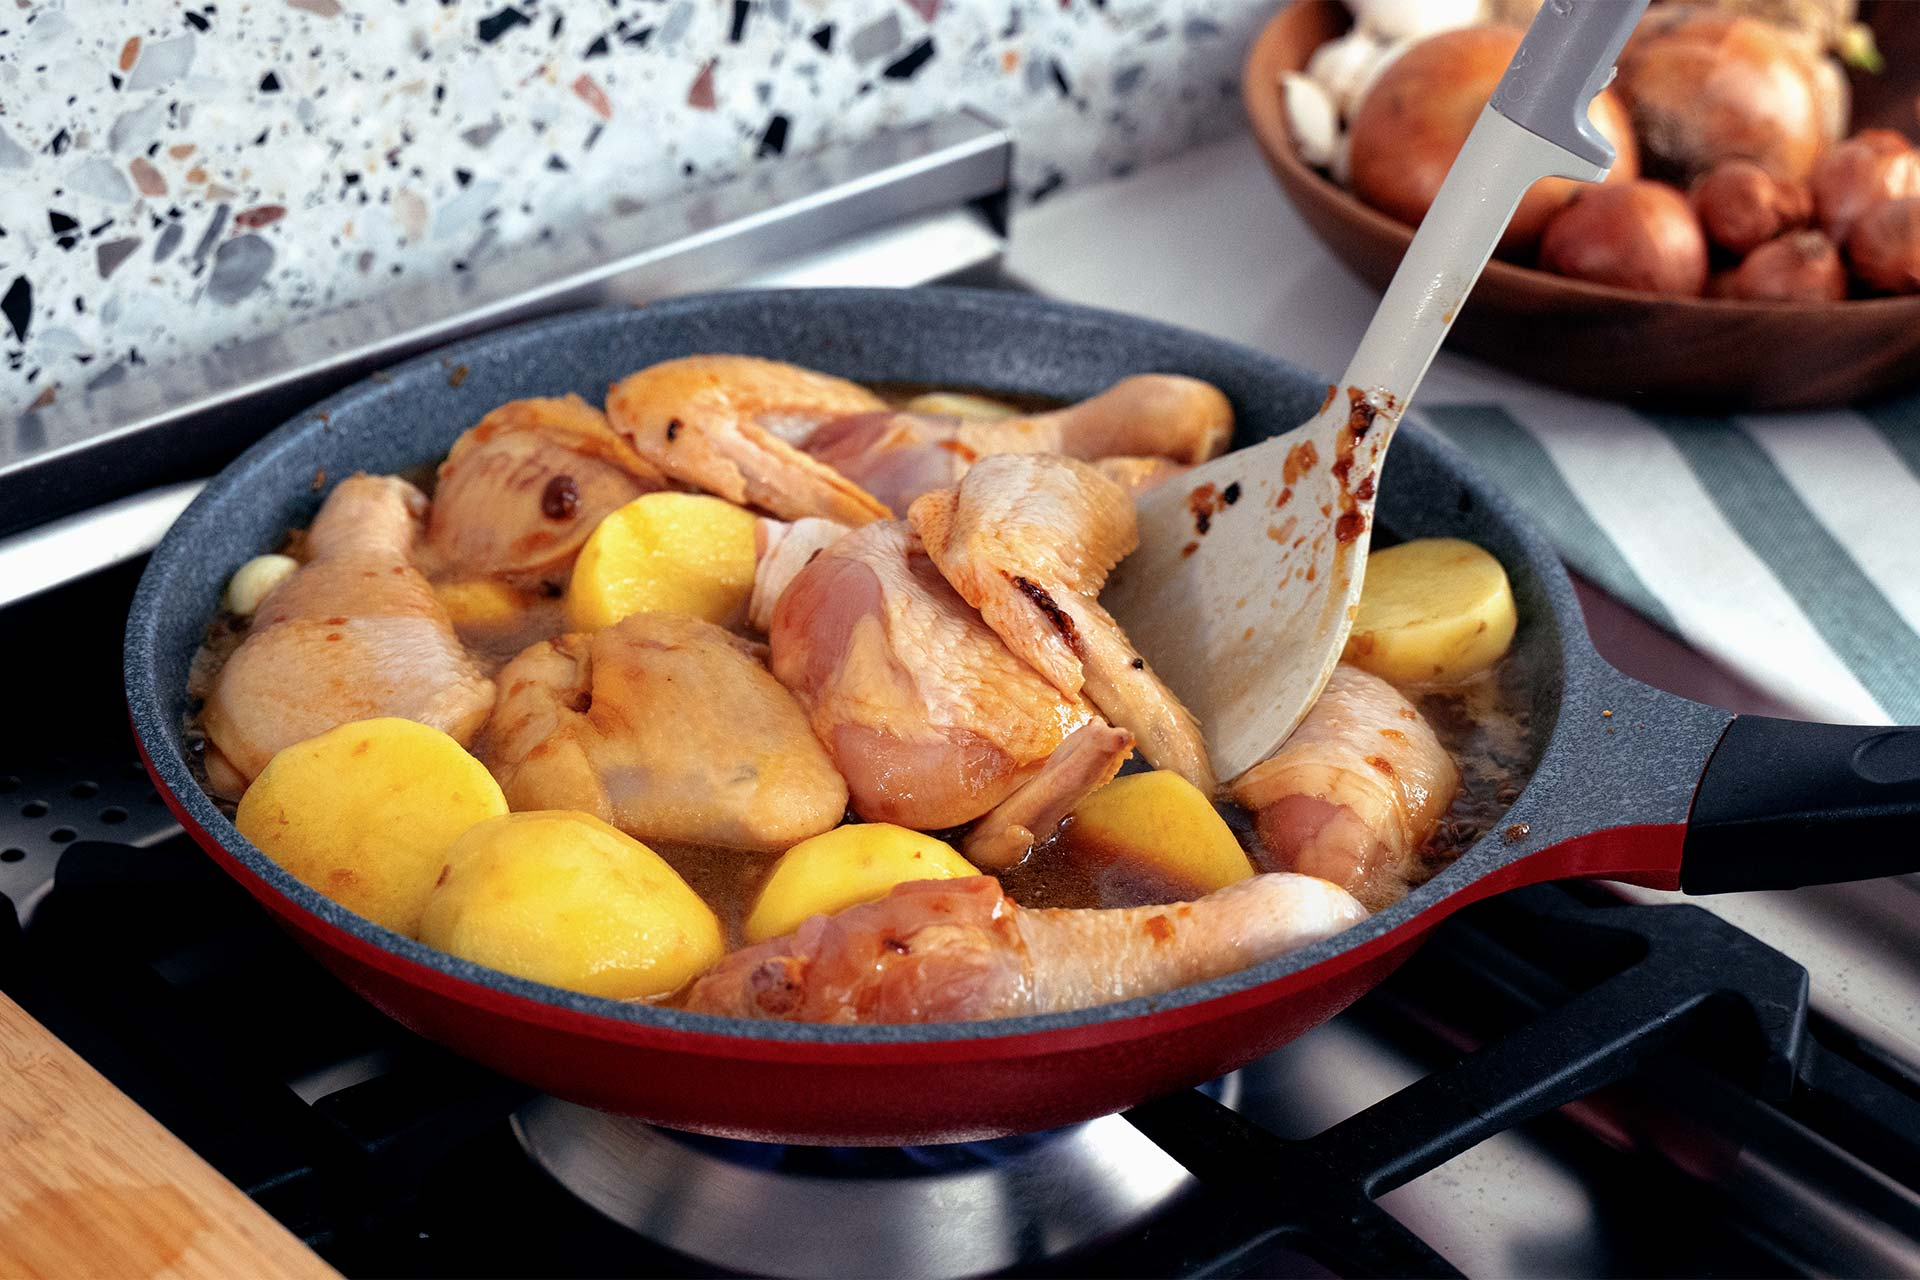 Add chicken, potatoes, dark soy sauce and water